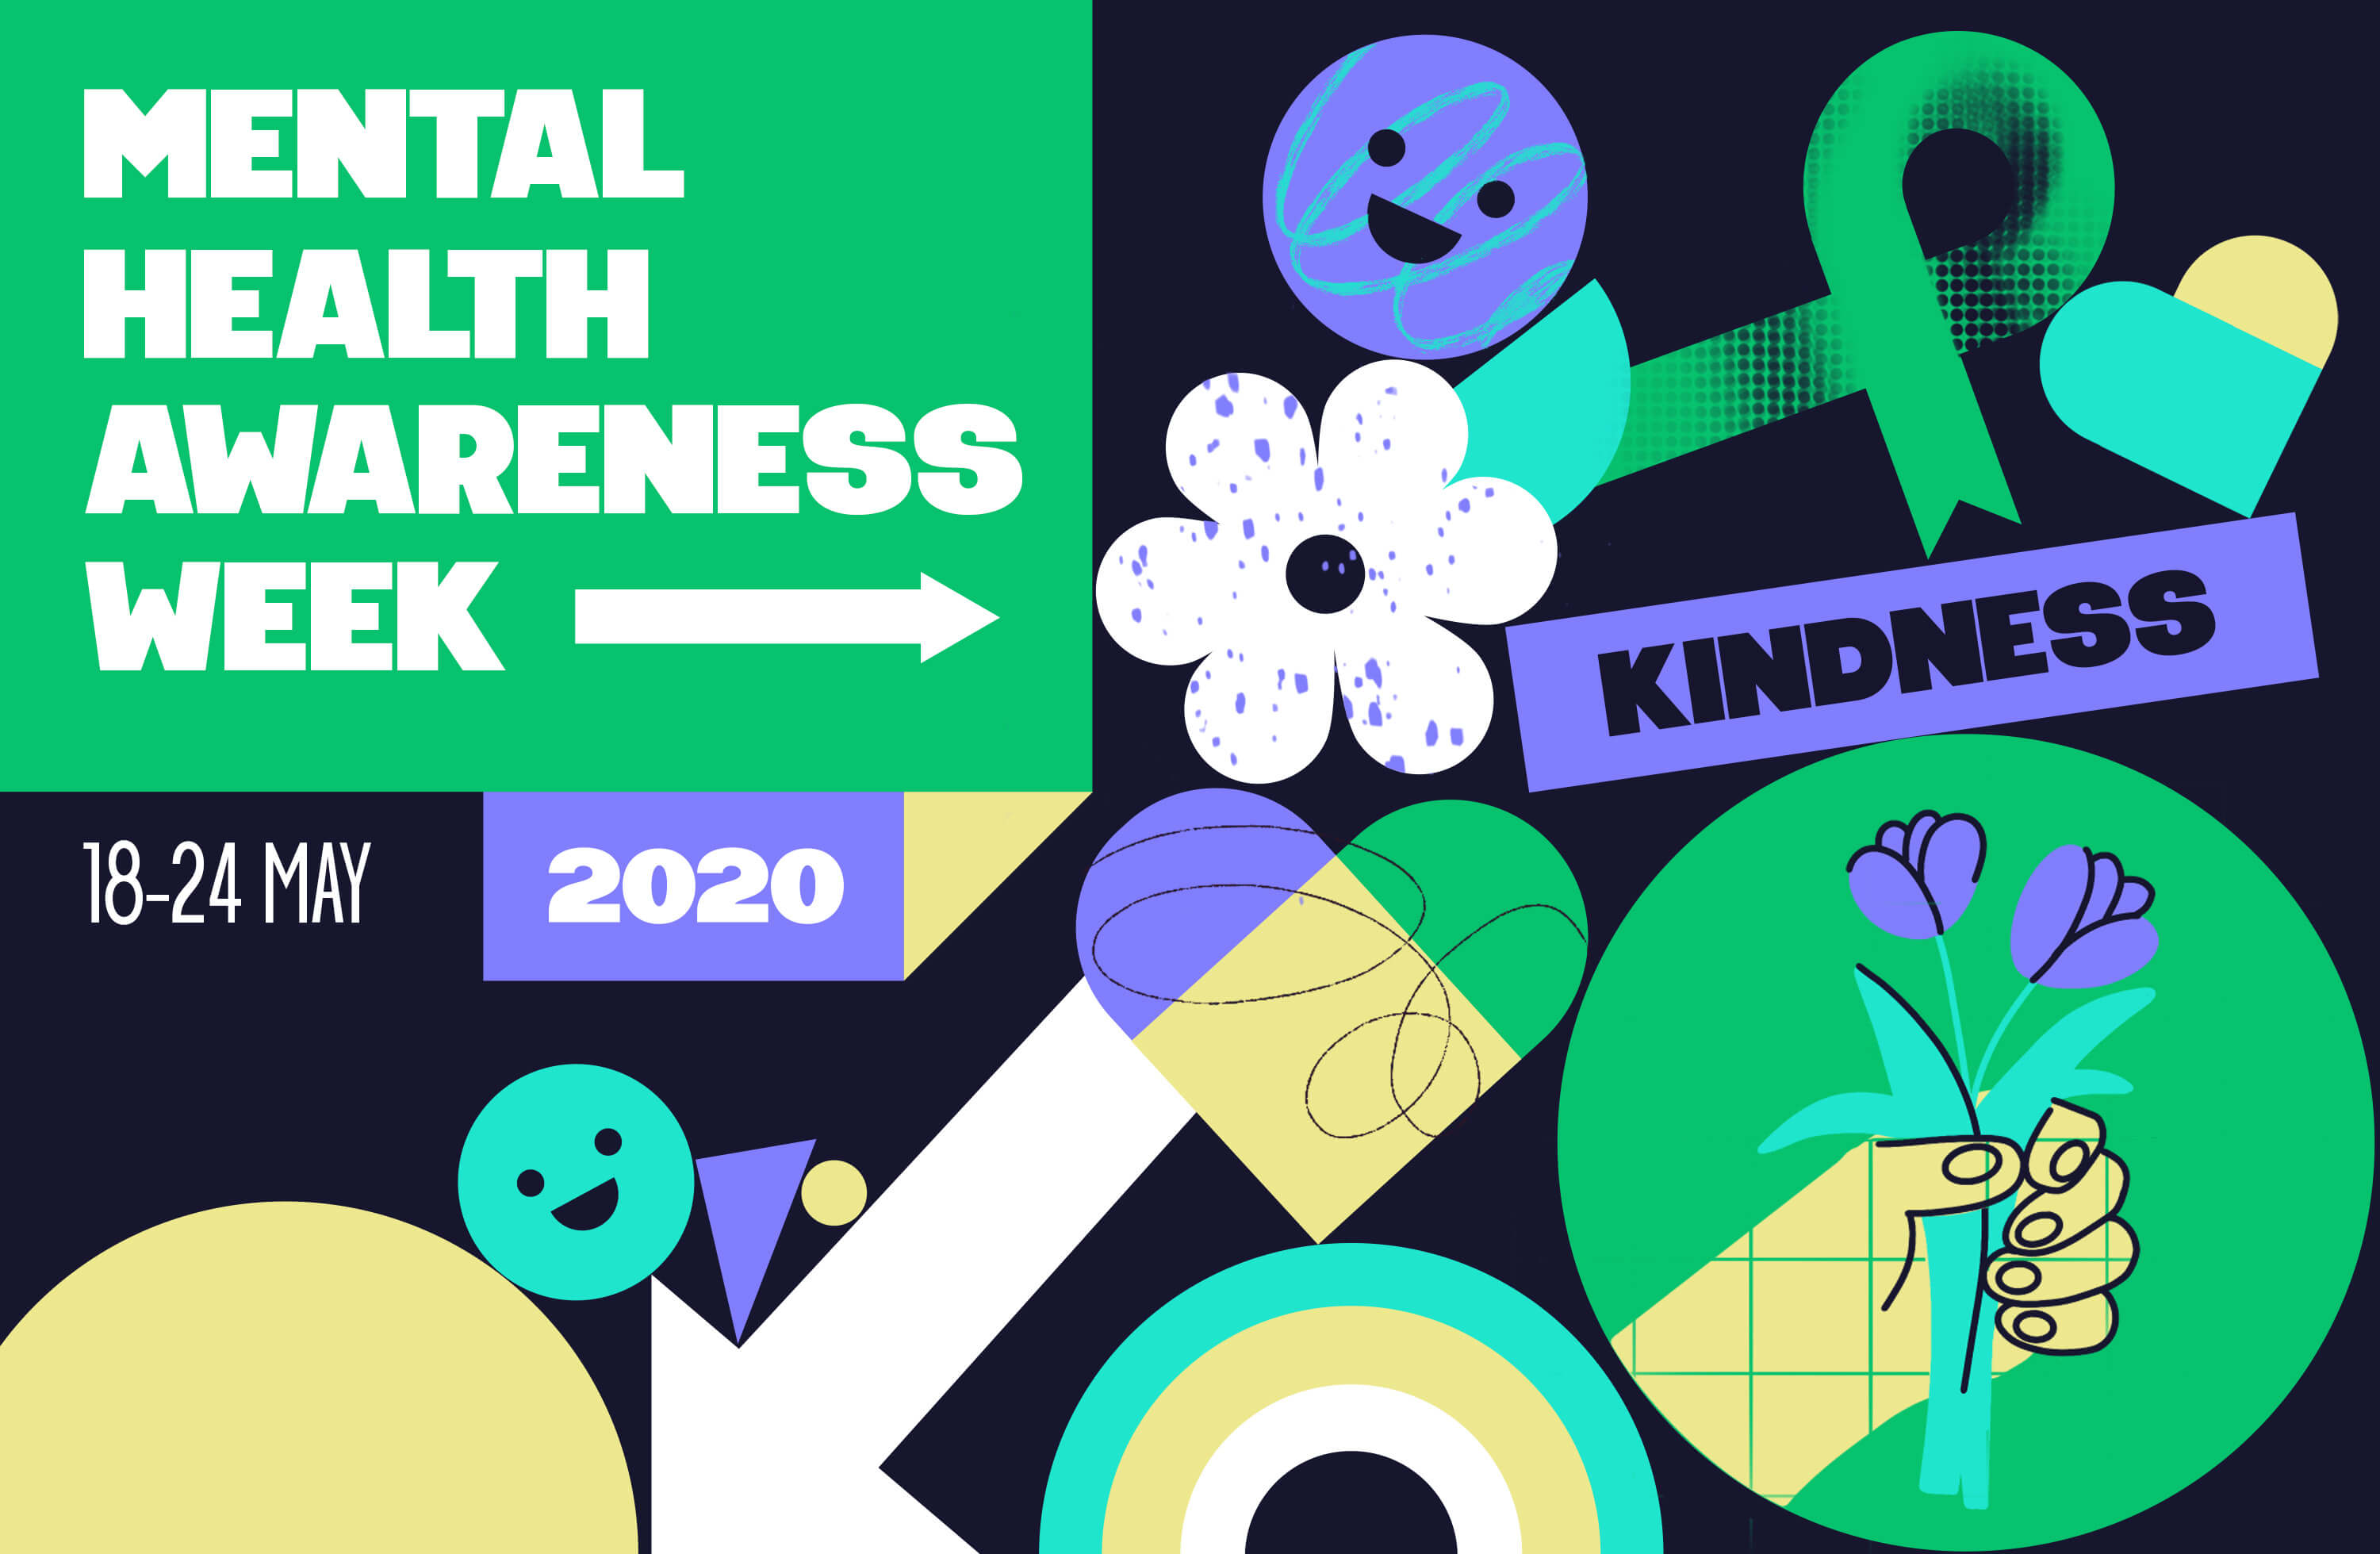 Mental health awareness week an 'opportunity to reflect on ...